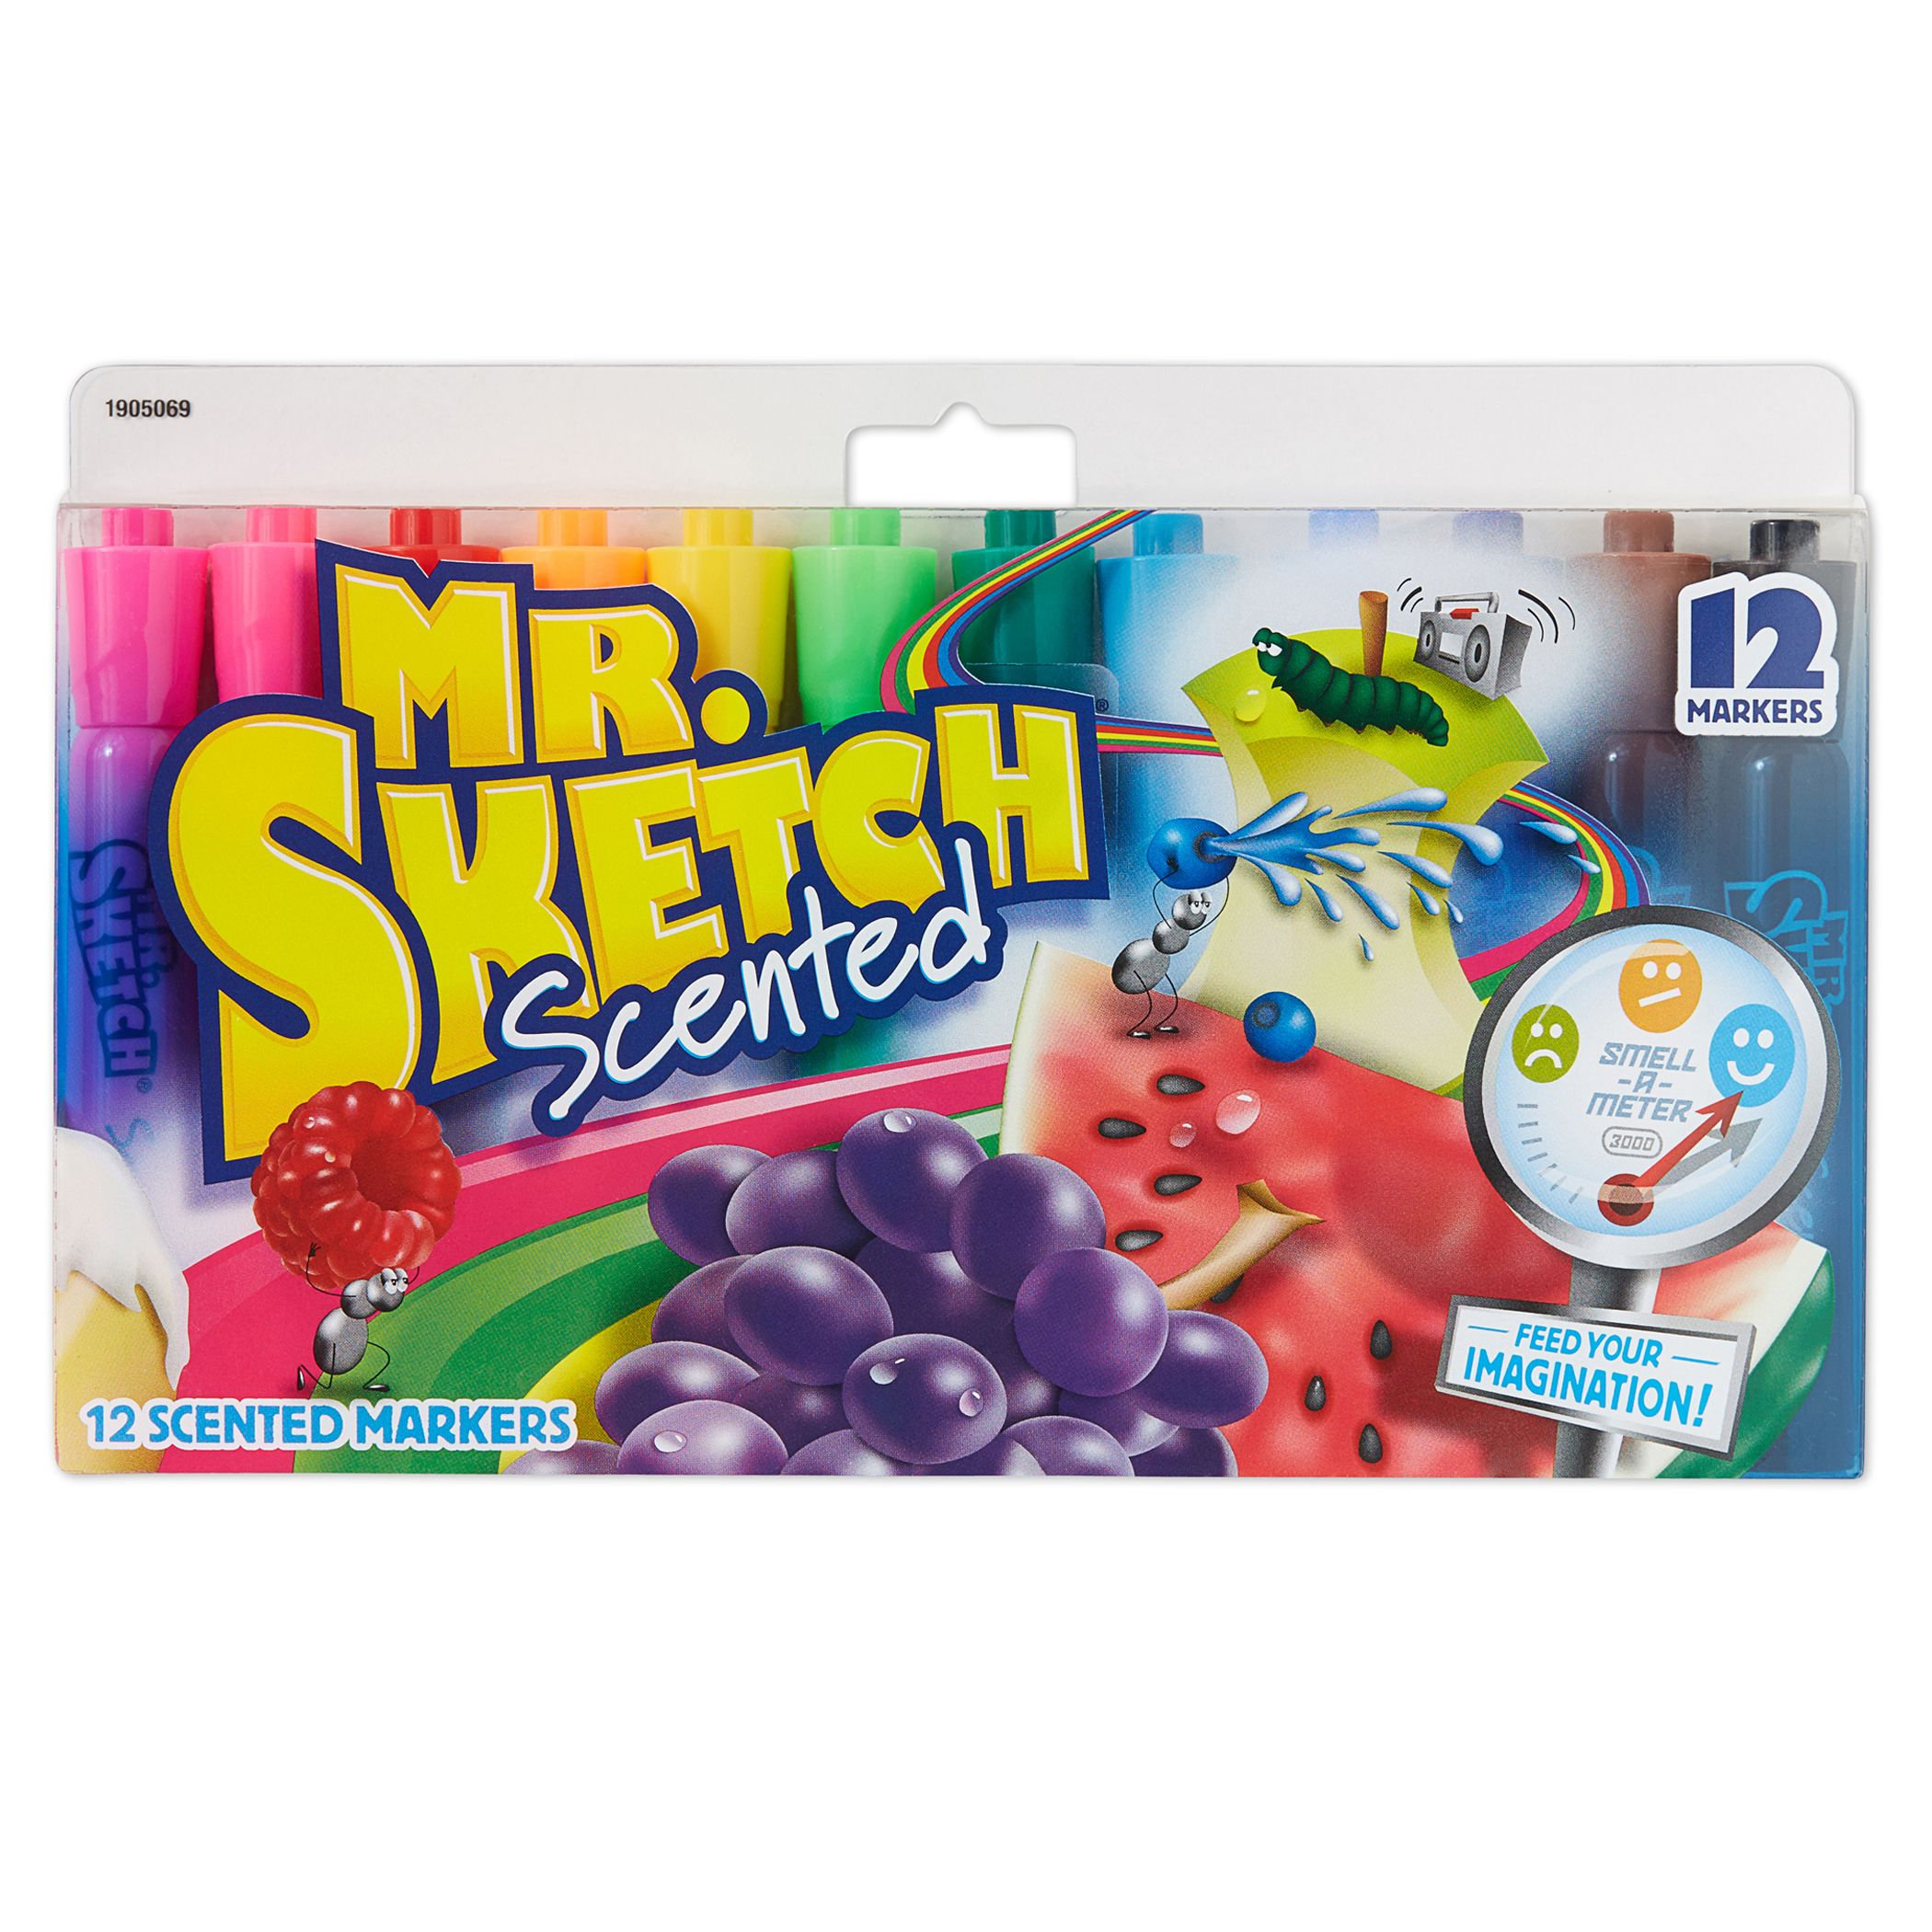 Mr. Sketch® Scented Markers, Chisel Tip, Assorted Colors